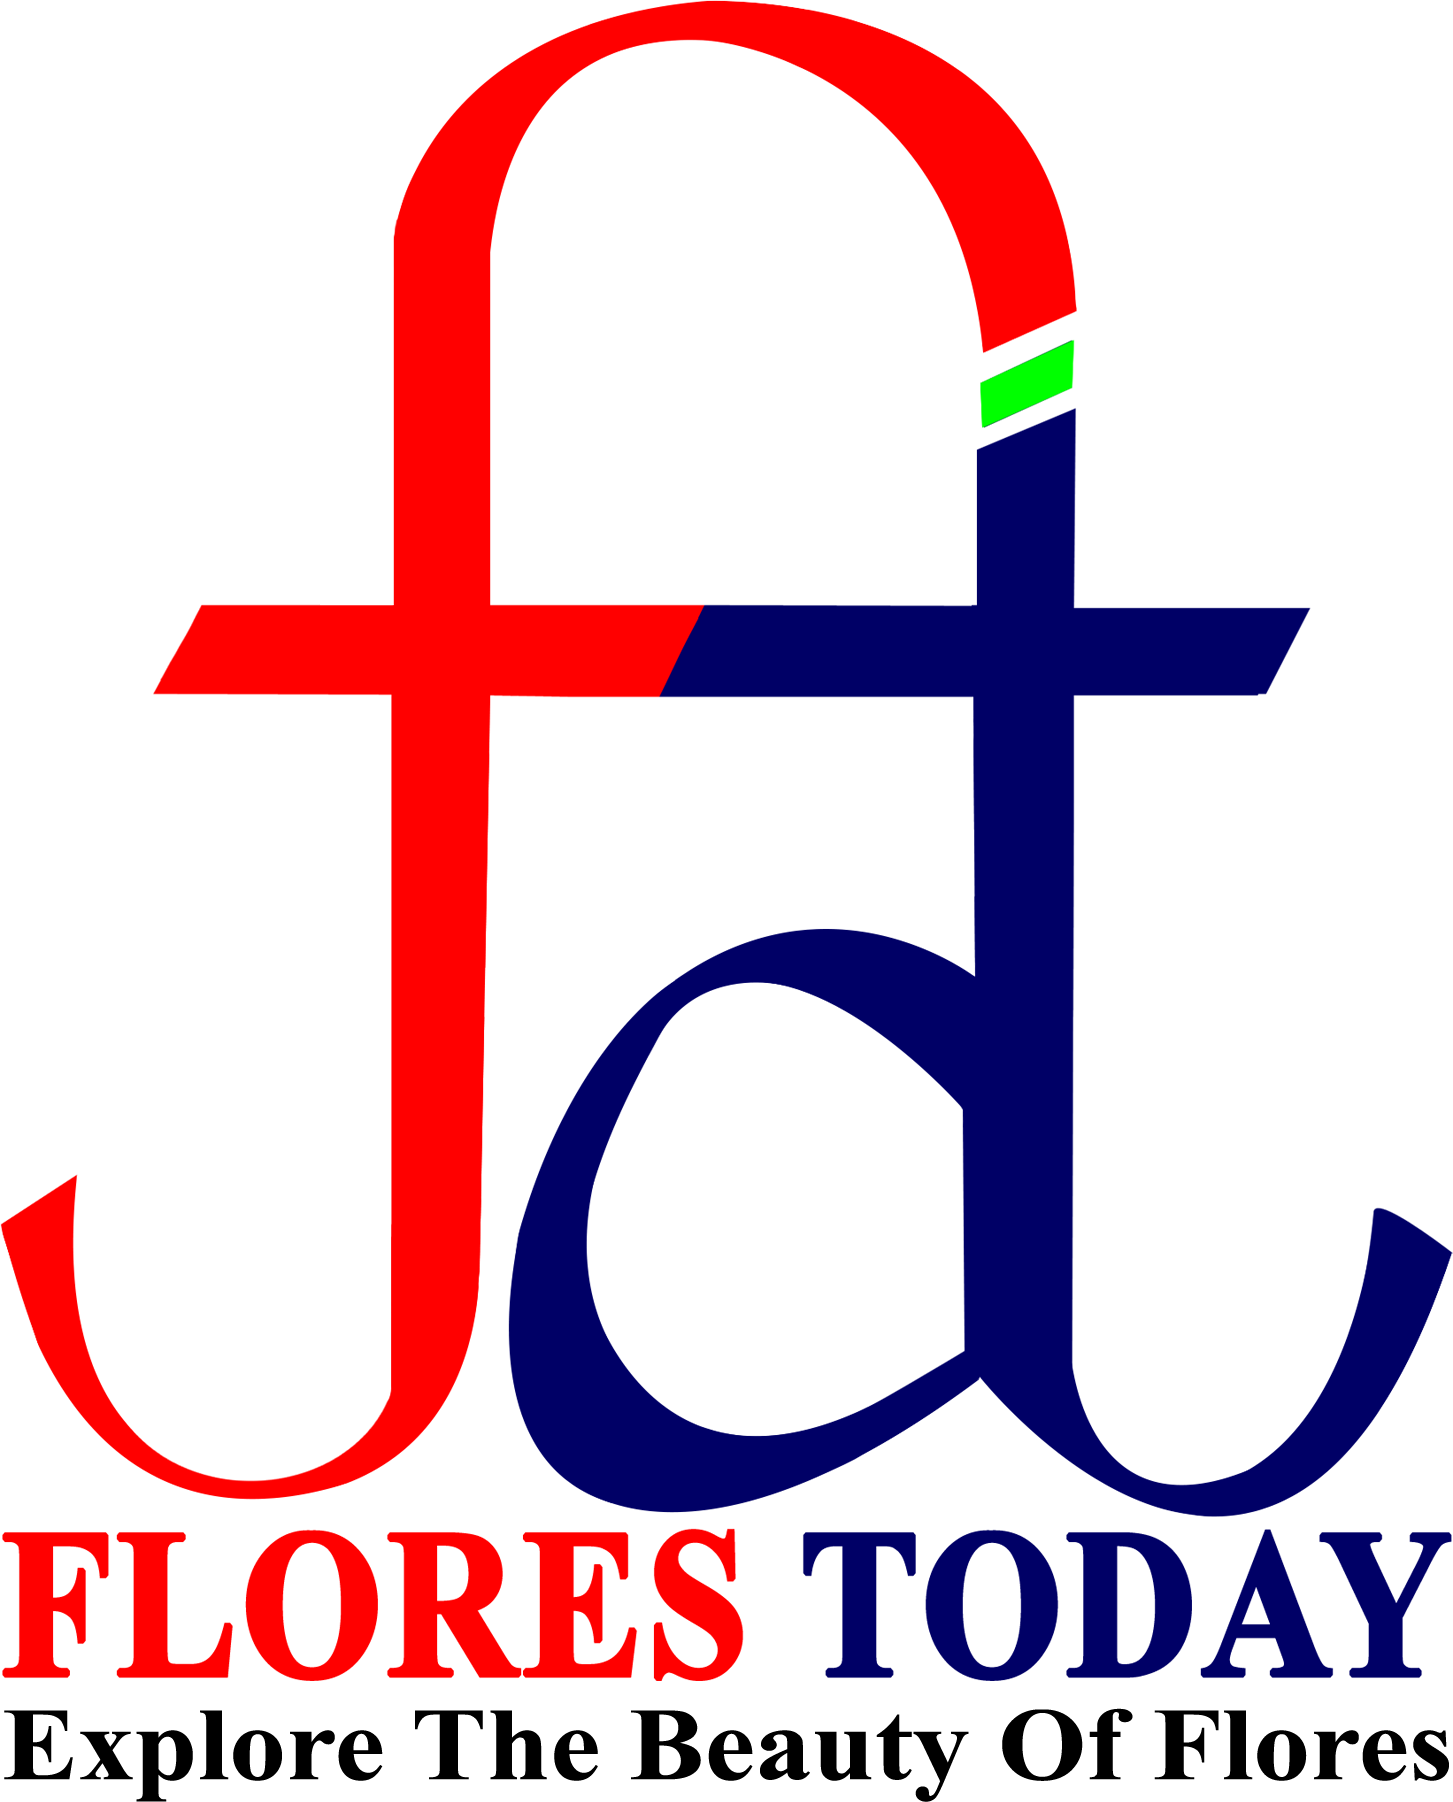 Flores Today